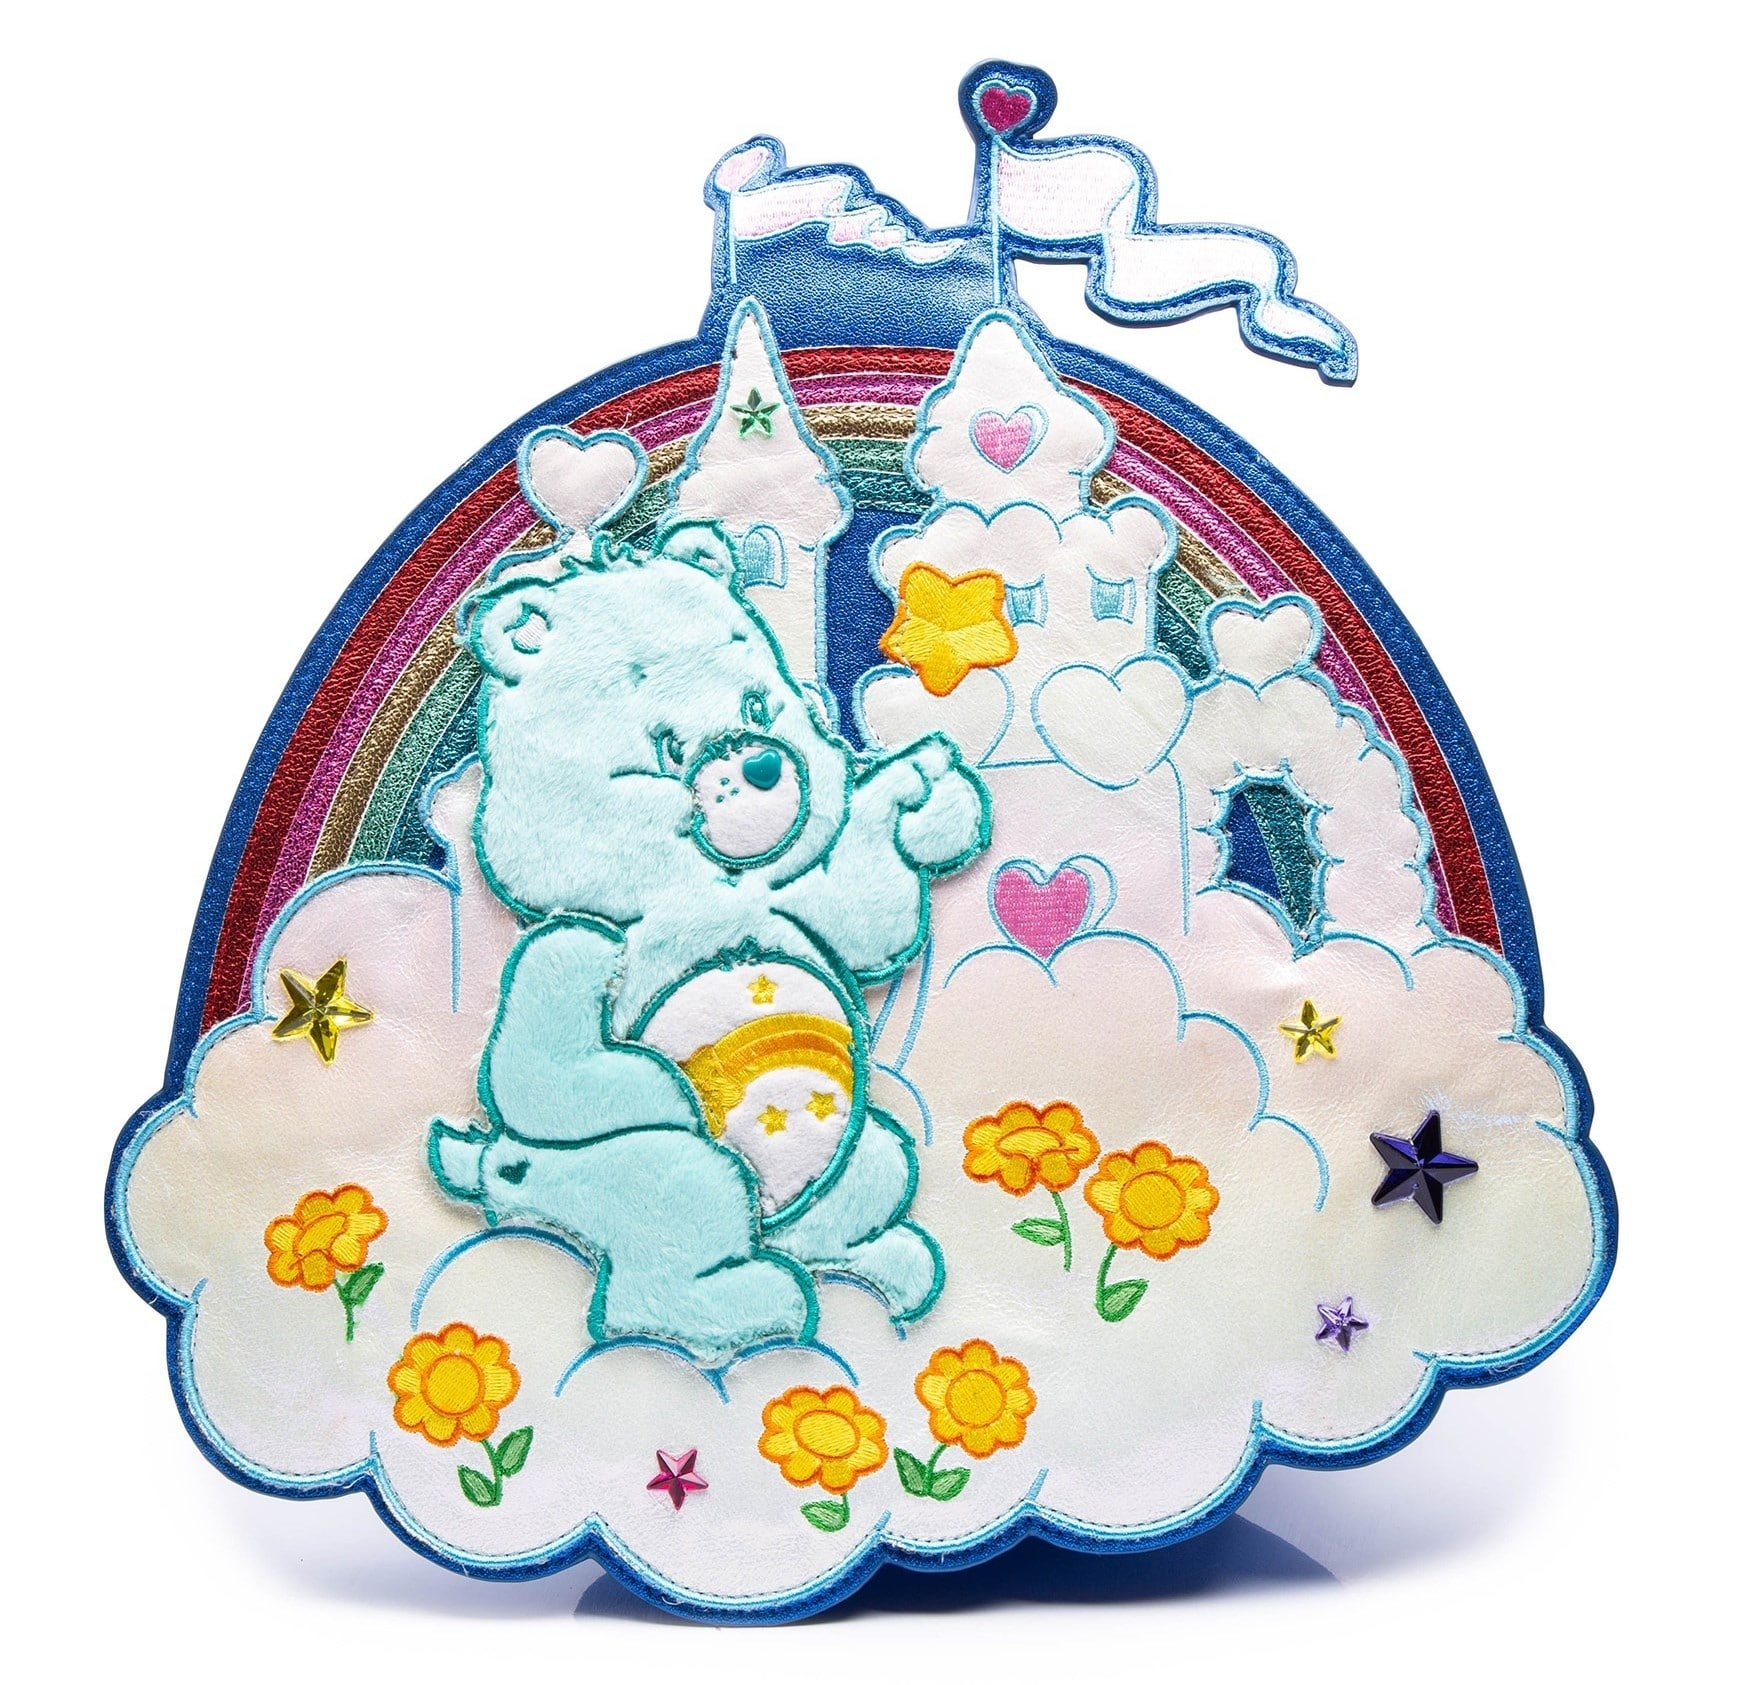 Irregular Choice Care Bears collection includes outrageous furry shoes 25